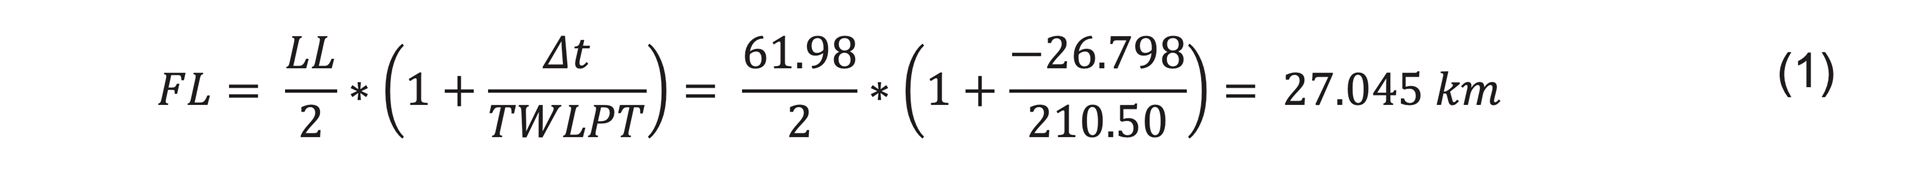 REE equation